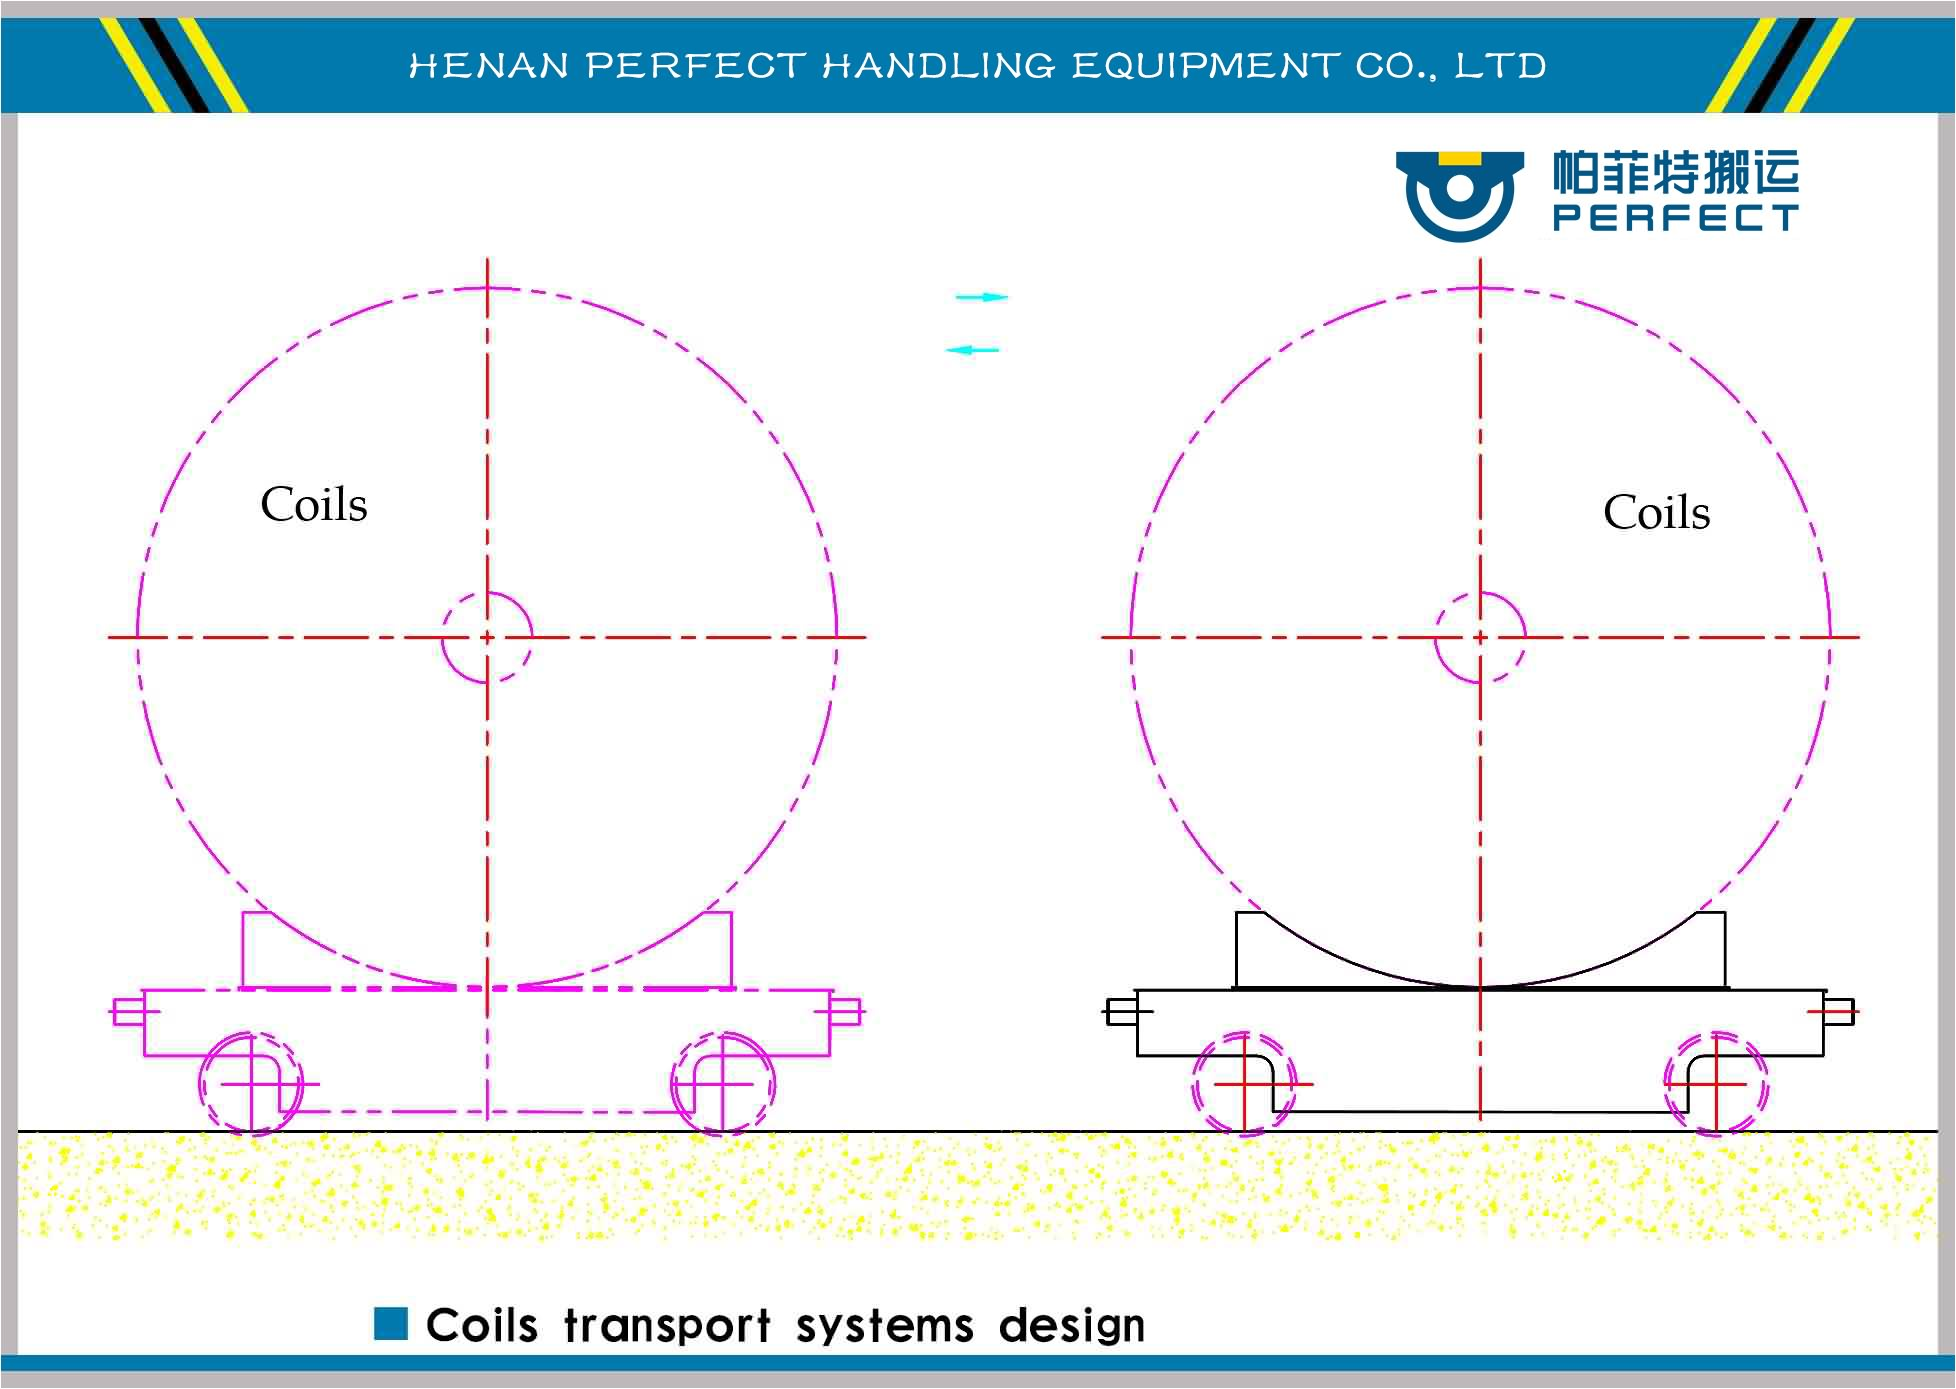 rebar coils transport solutions,coils transport systems